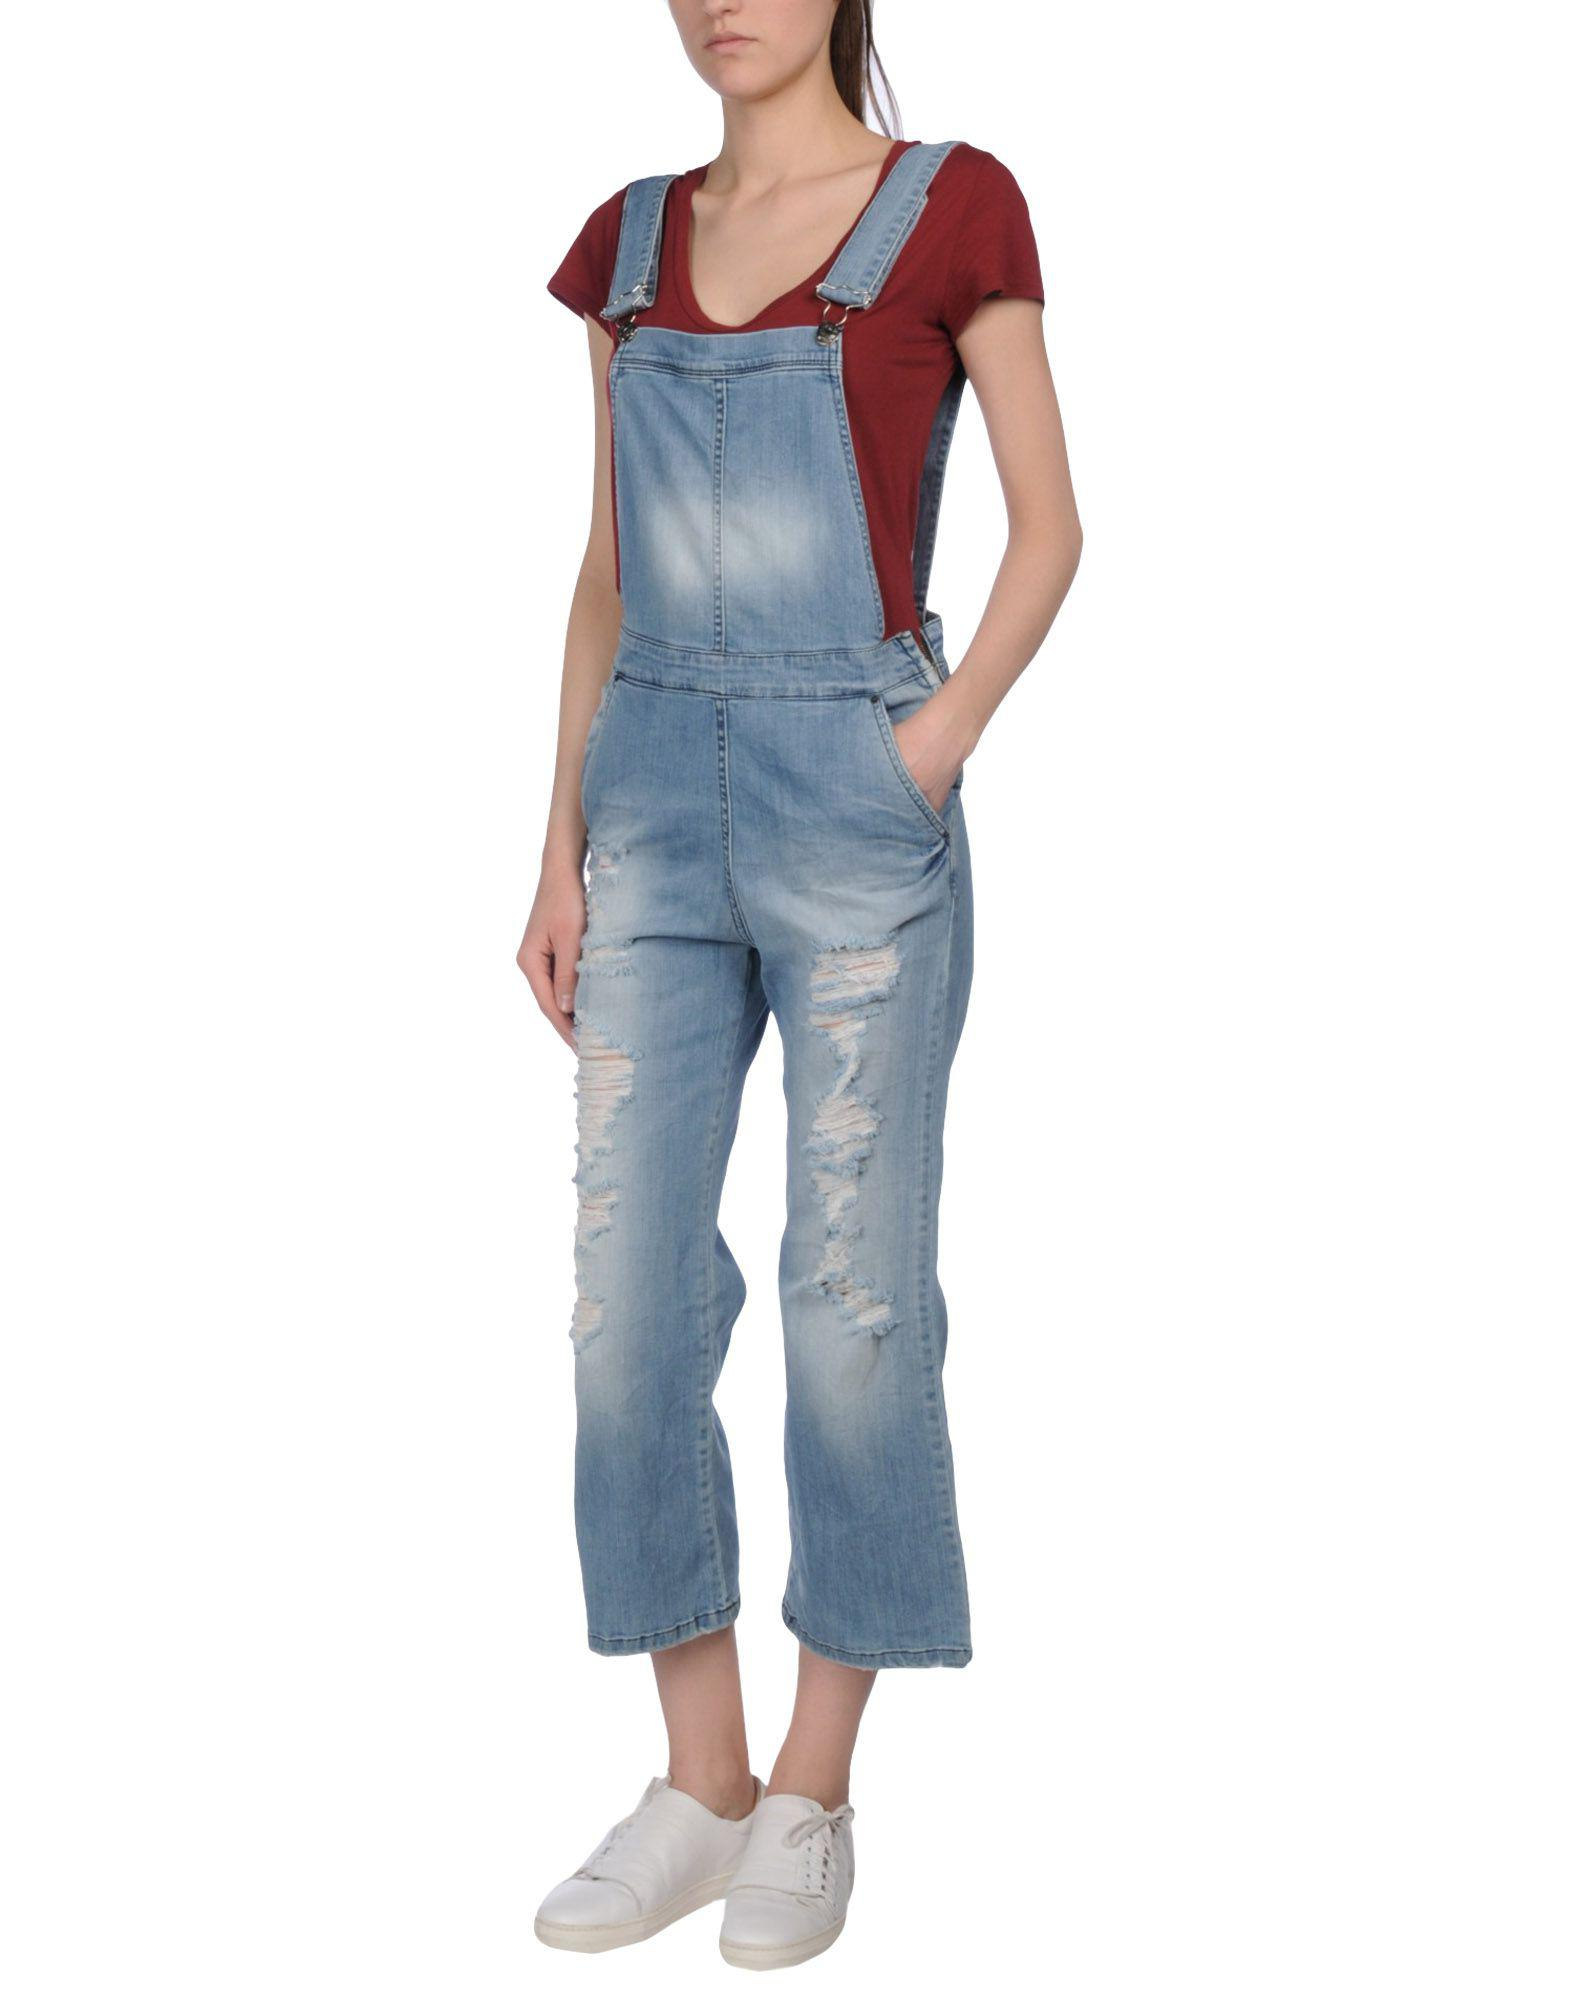 DUNGAREES - Short dungarees Klixs Jeans Free Shipping Very Cheap Store Cheap Price Cheap Genuine nxfOfkD8V